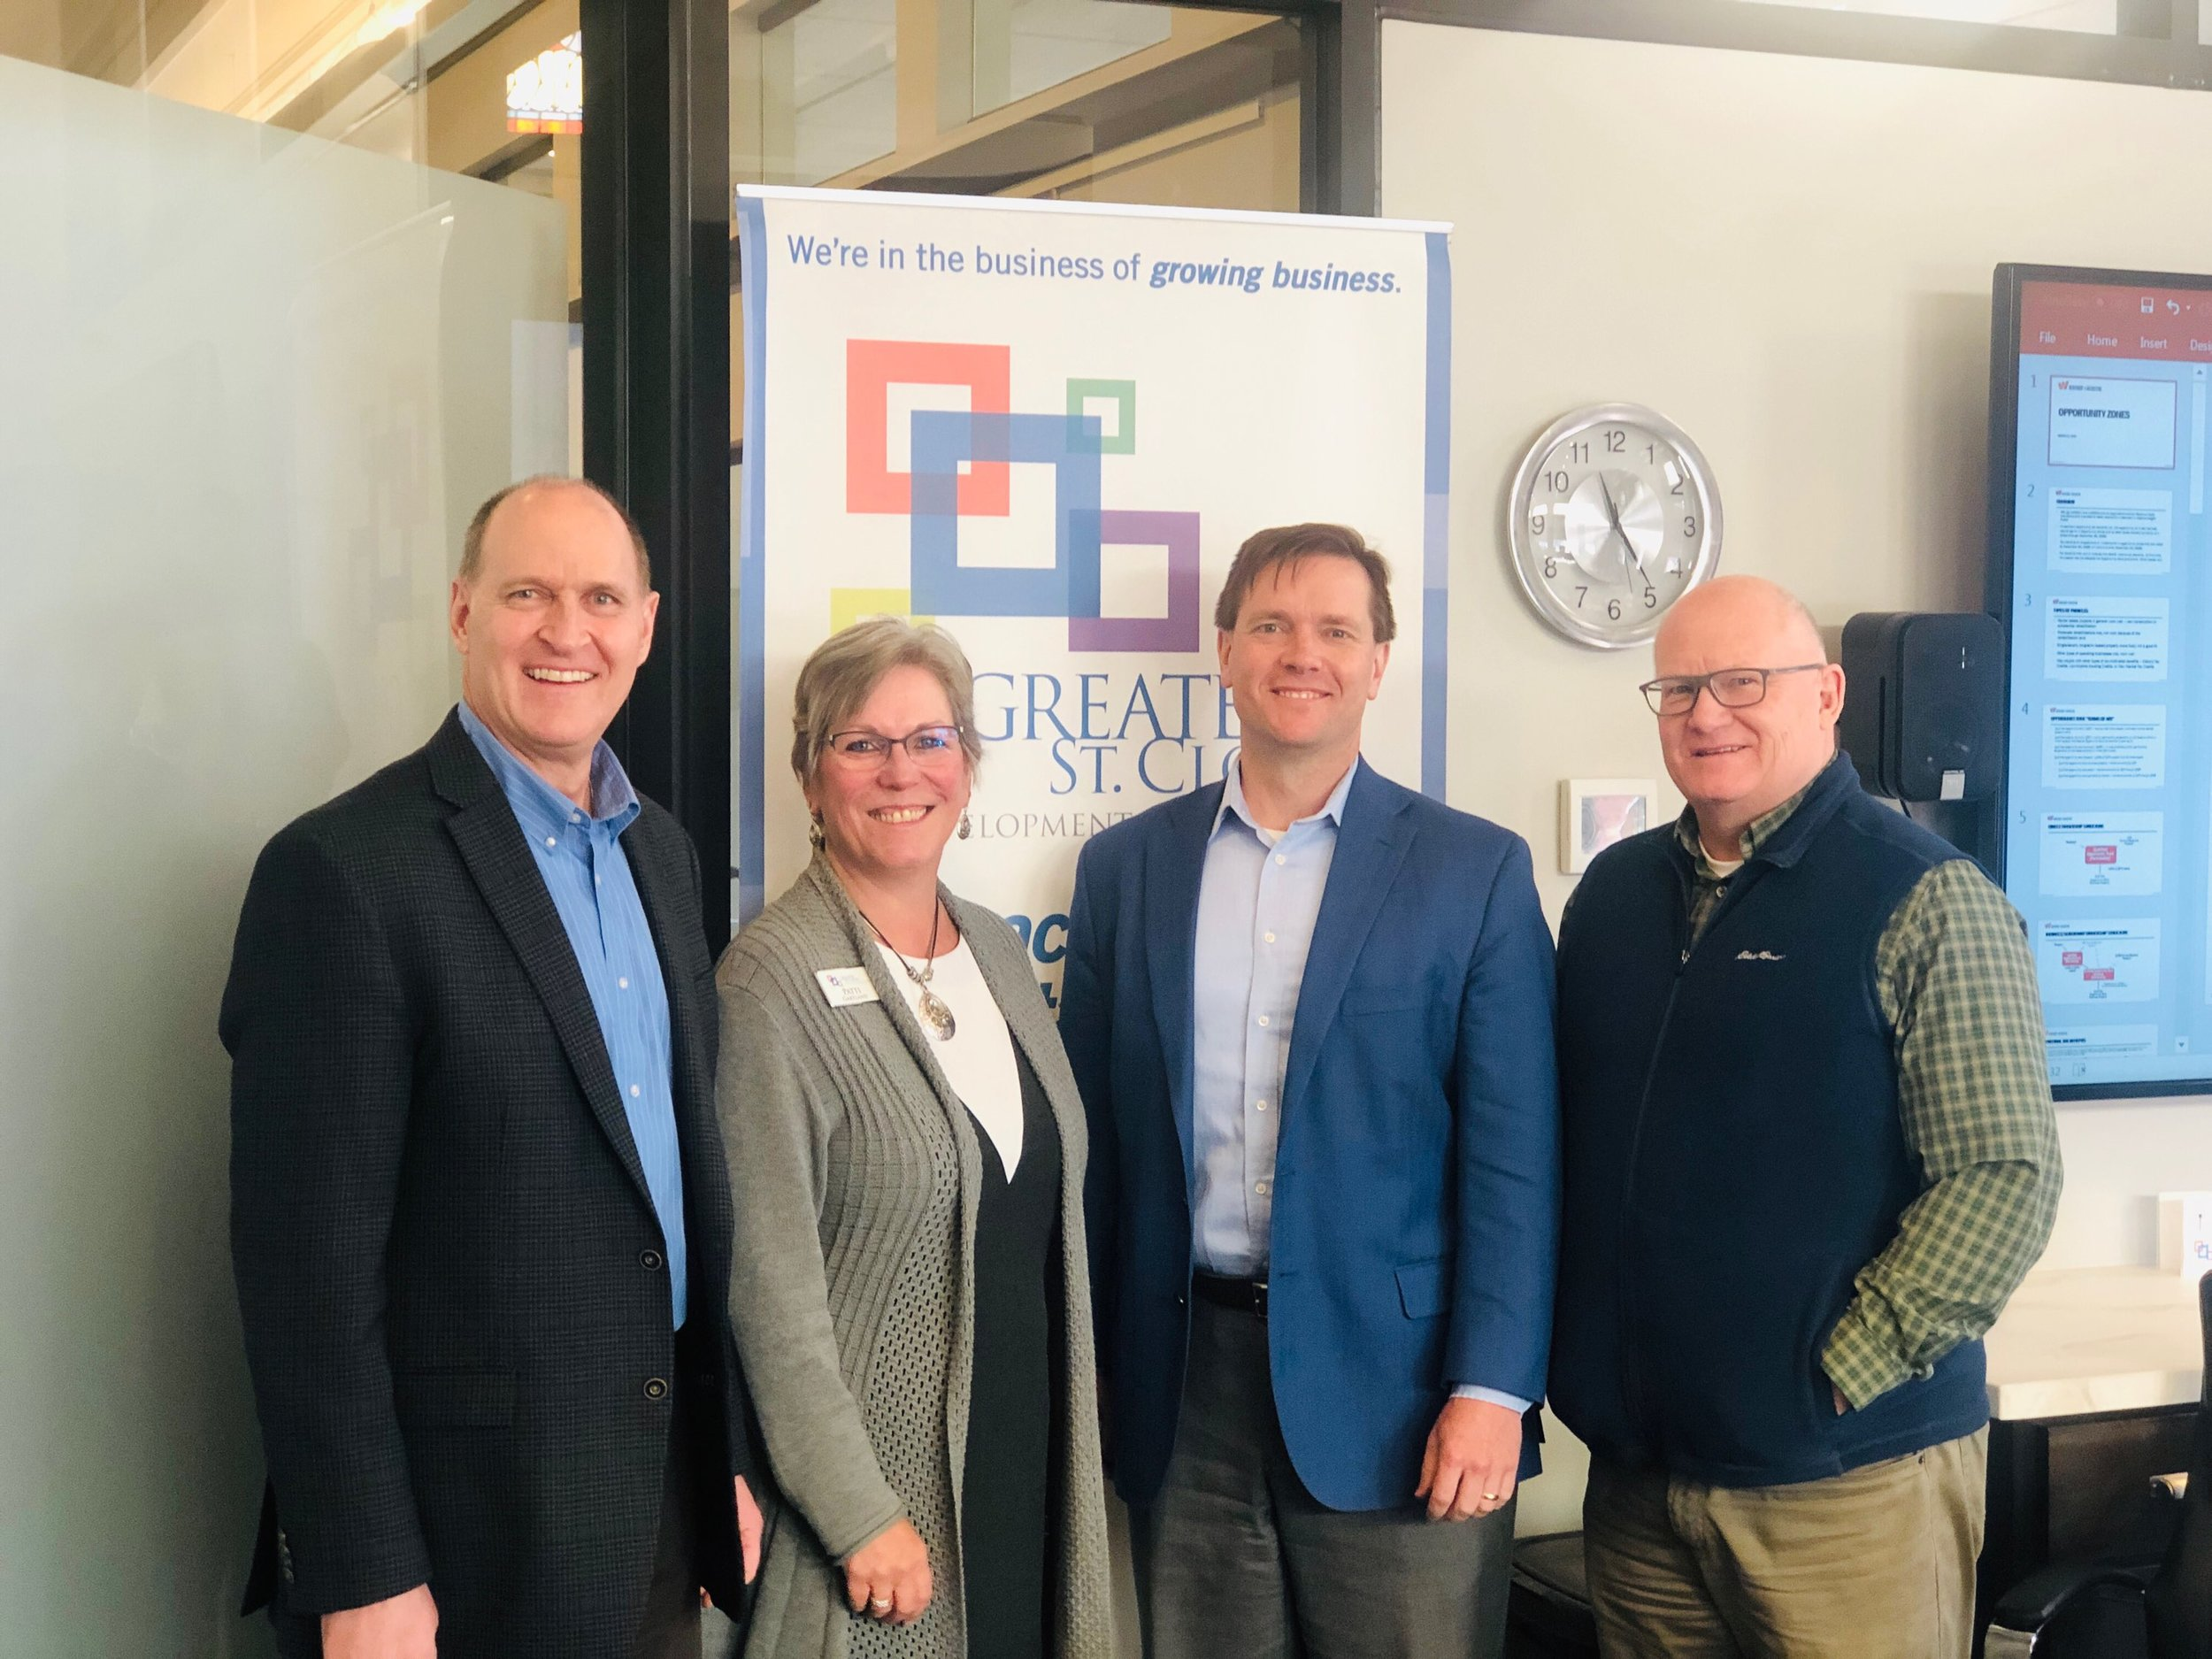 (Pictured left to right: Steve Schueller, (Schlenner Wenner & Co.), Patti Gartland, (GSDC), Norm Jones (Winthrop & Weinstine) and Greg Hohlen (Minnwest Bank).